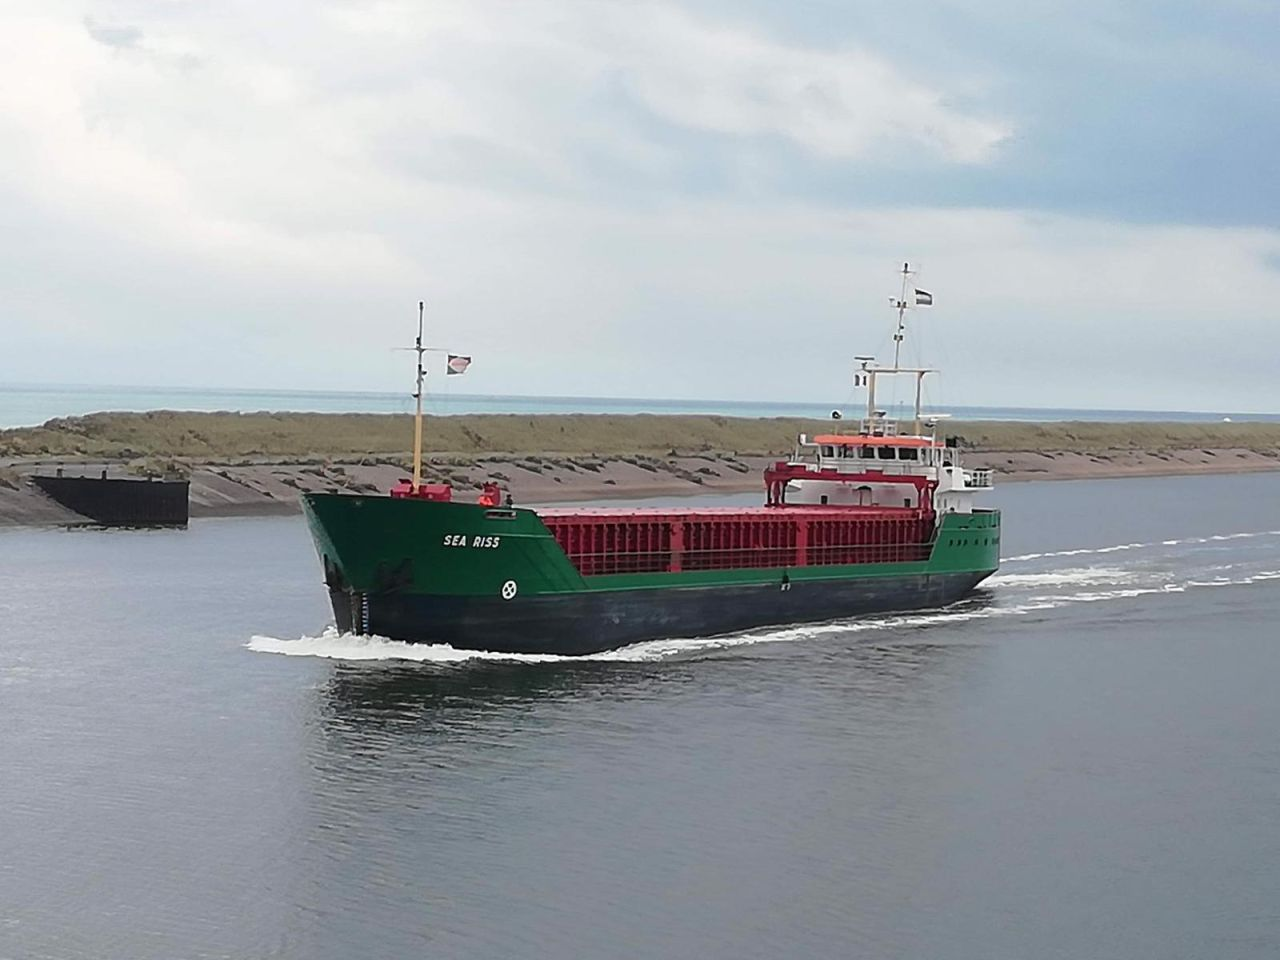 mv Sea Riss entering port of Dunkirk